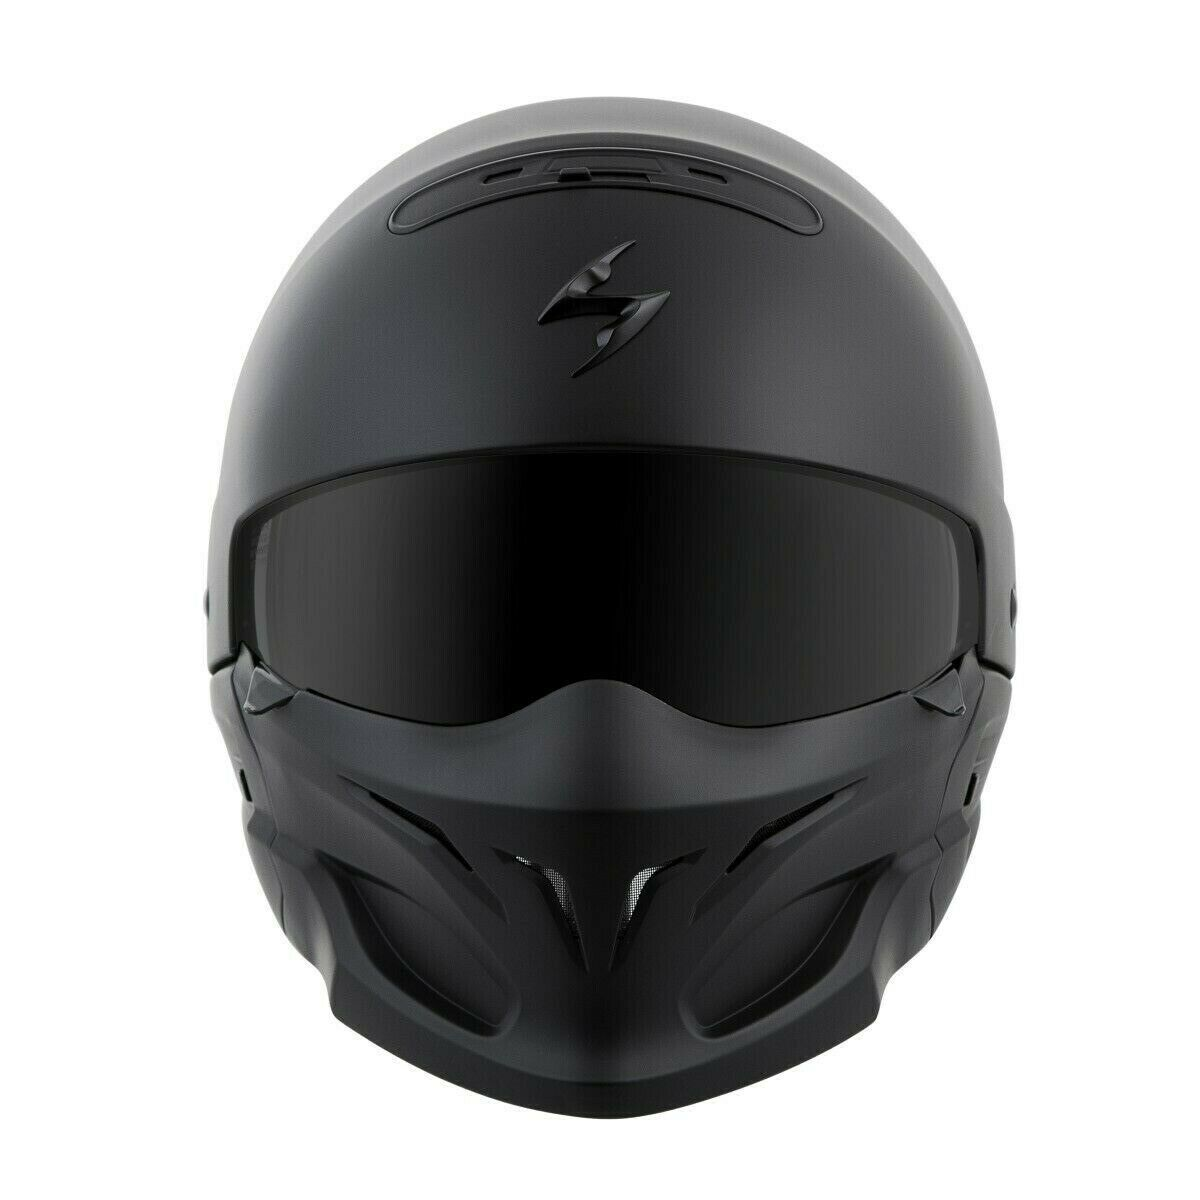 New Size XL Scorpion EXO Covert Matt Black 3 in 1 Motorcycle Helmet DOT